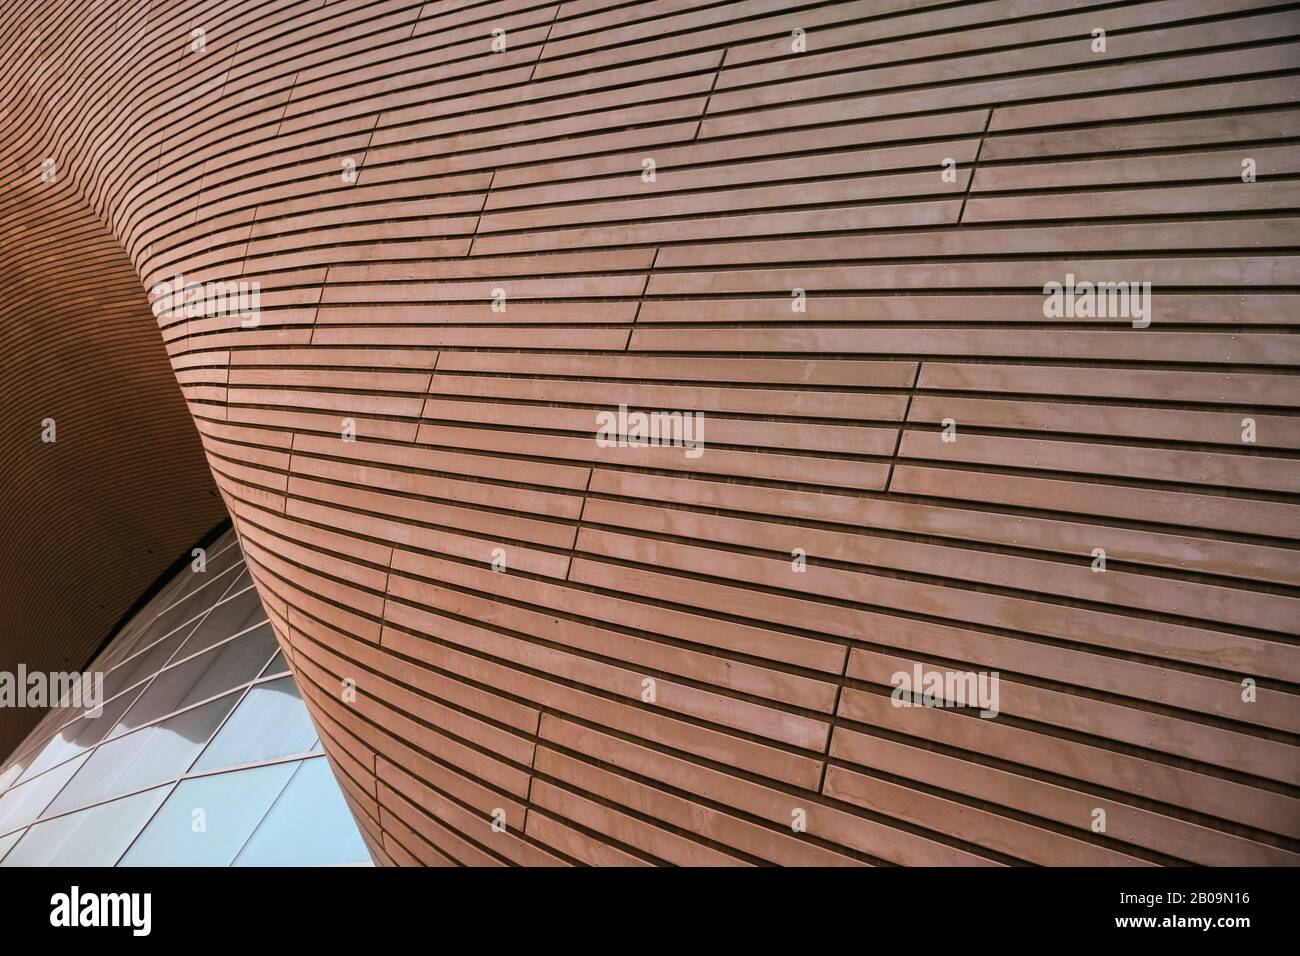 Roof Structure Detail London Aquatics Centre Swimming Pool Exterior By Zaha Hadid Queen Elizabeth Olympic Park Stratford London Uk Stock Photo Alamy